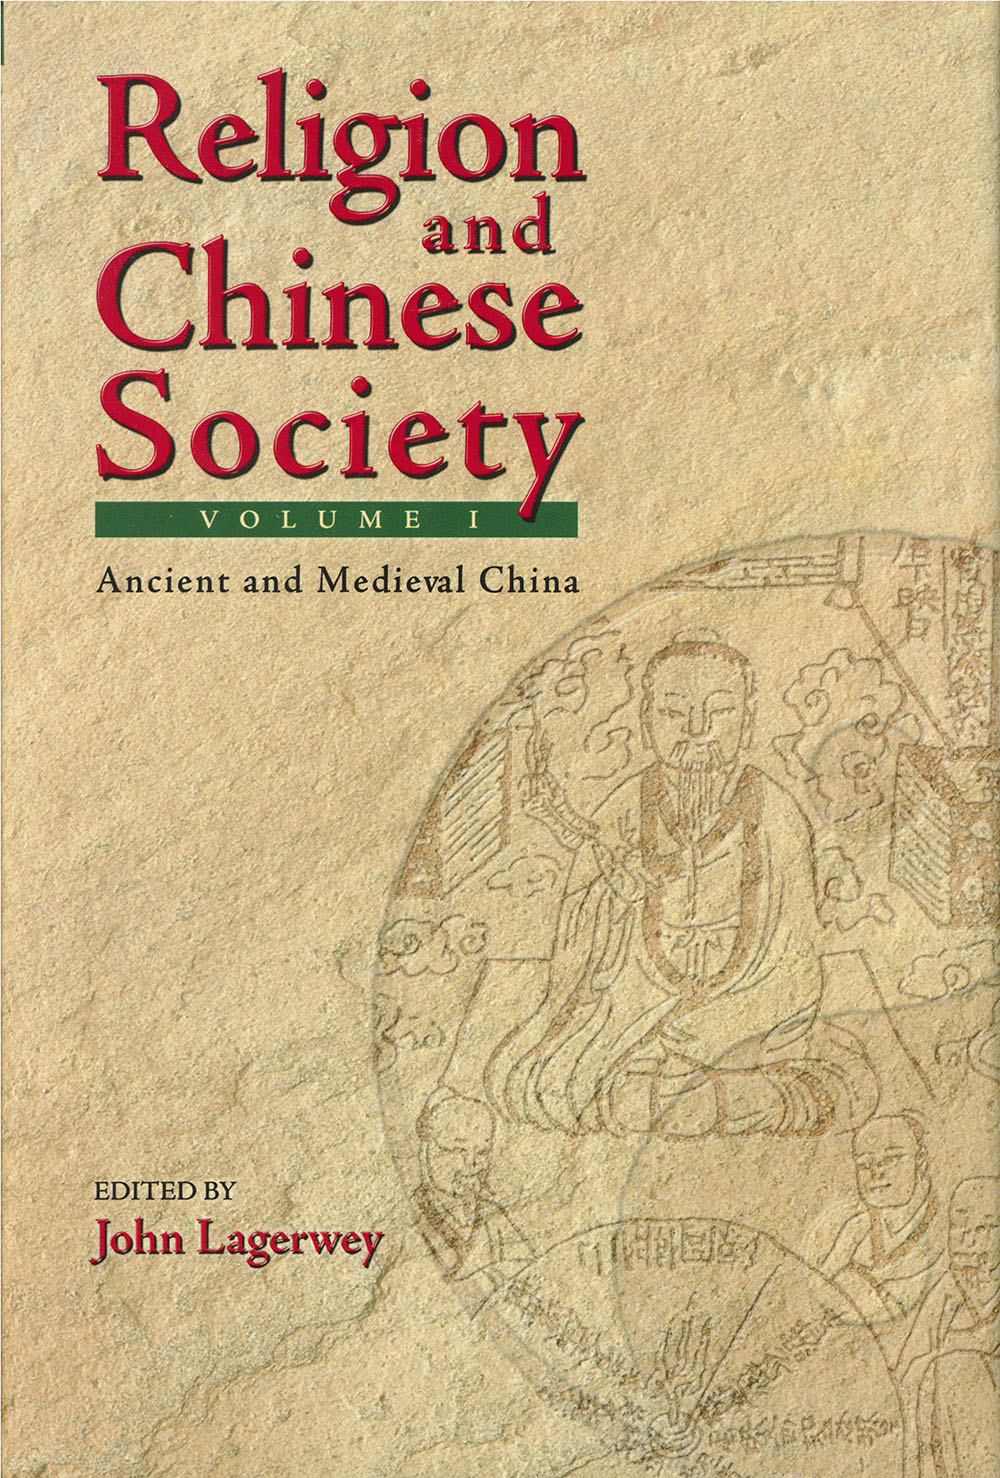 Religion and Chinese society : A Centennial Conference of the École française d'Extrême-Orient